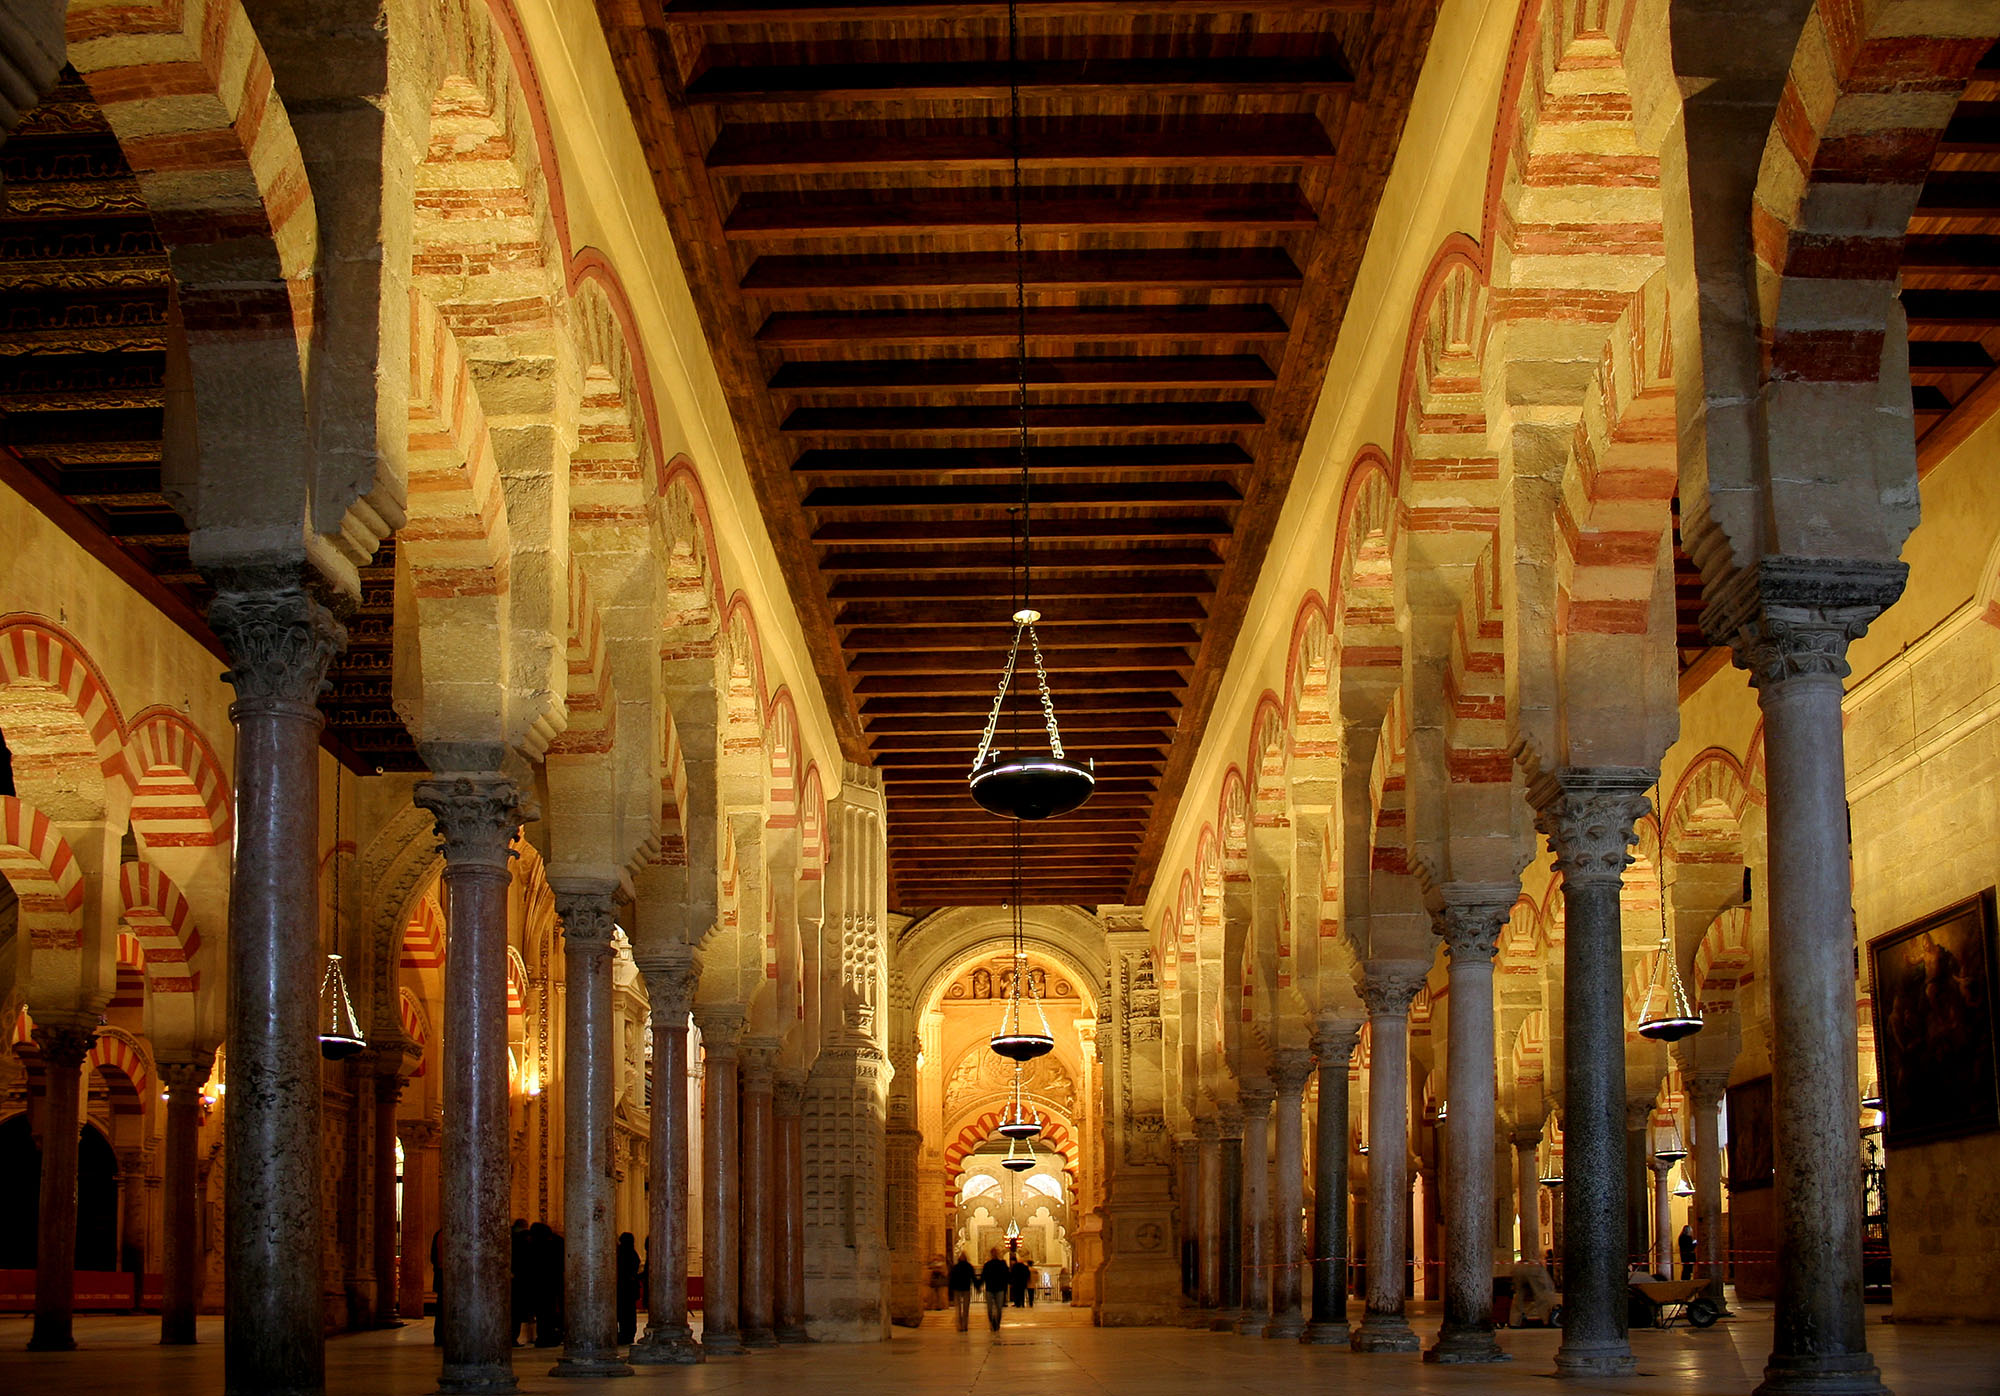 DAYTRIP TO CORDOBA